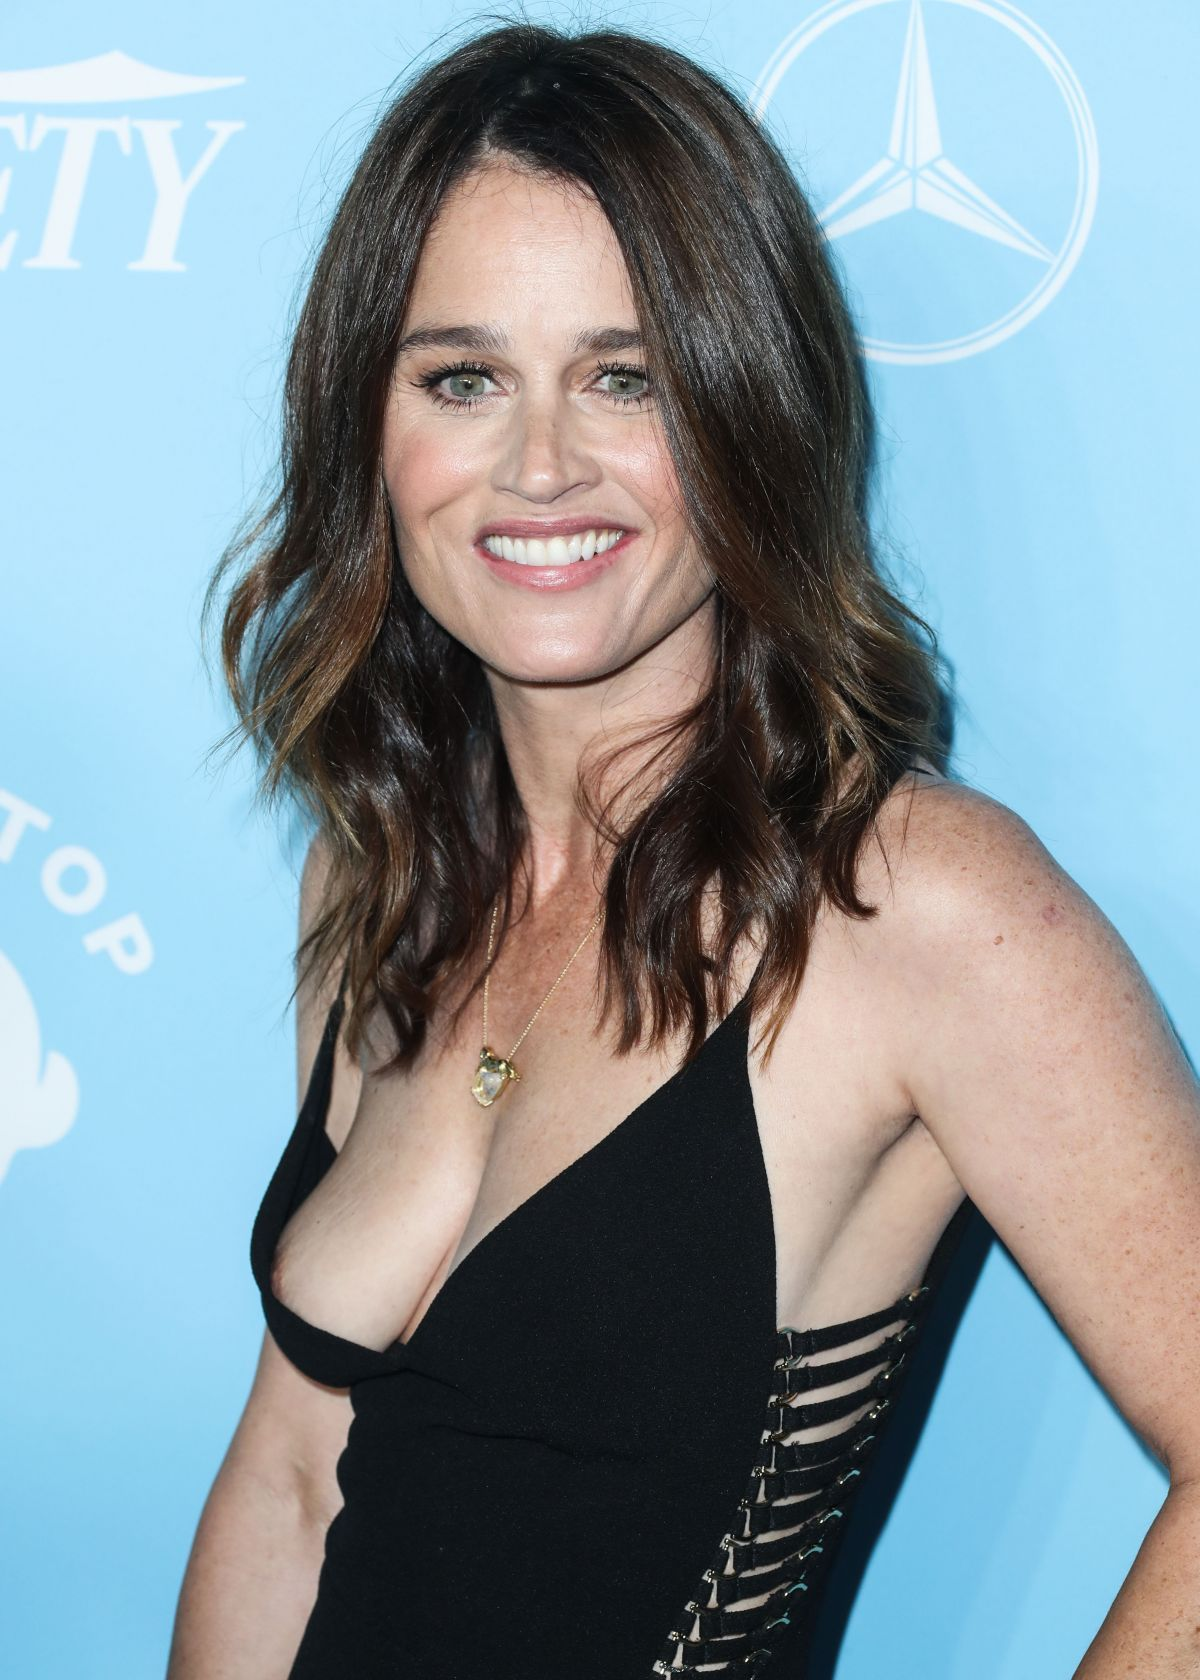 Selfie Robin Tunney naked (19 photos), Ass, Cleavage, Selfie, lingerie 2018